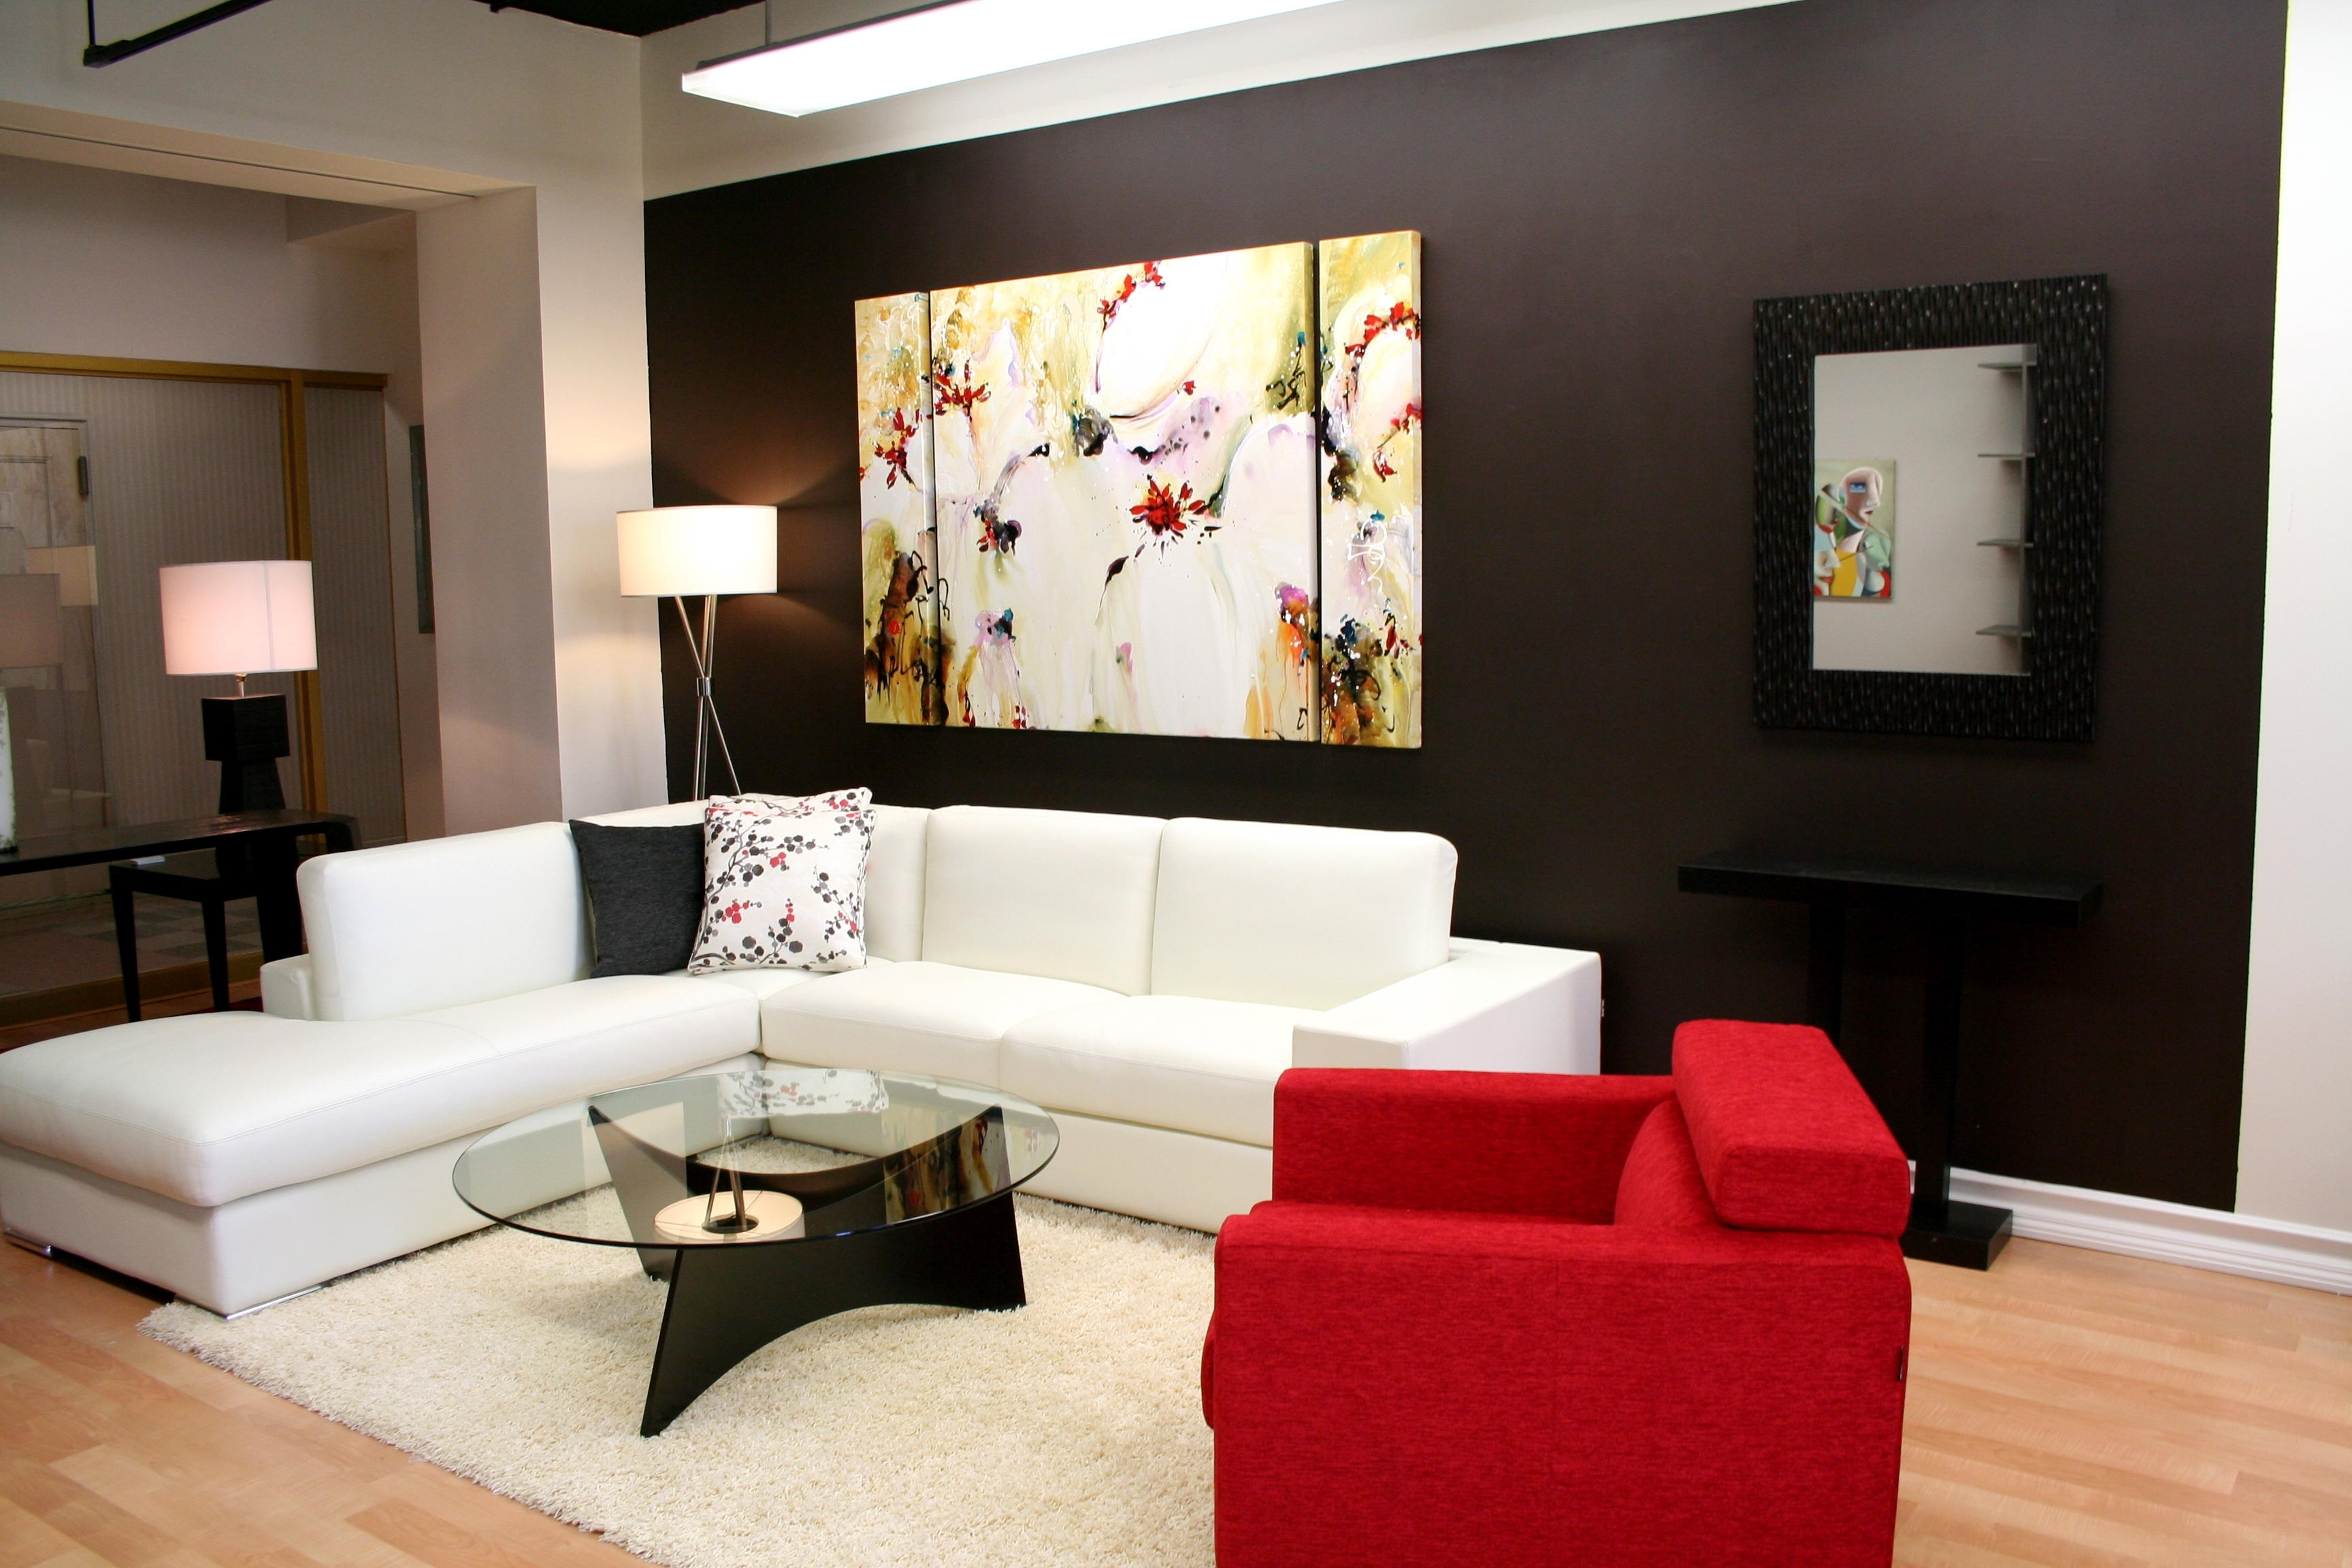 Trendy Interior For Modern Living Room With L Shape Sofa And Arm Within Most Up To Date Wall Accents For L Shaped Room (View 8 of 15)